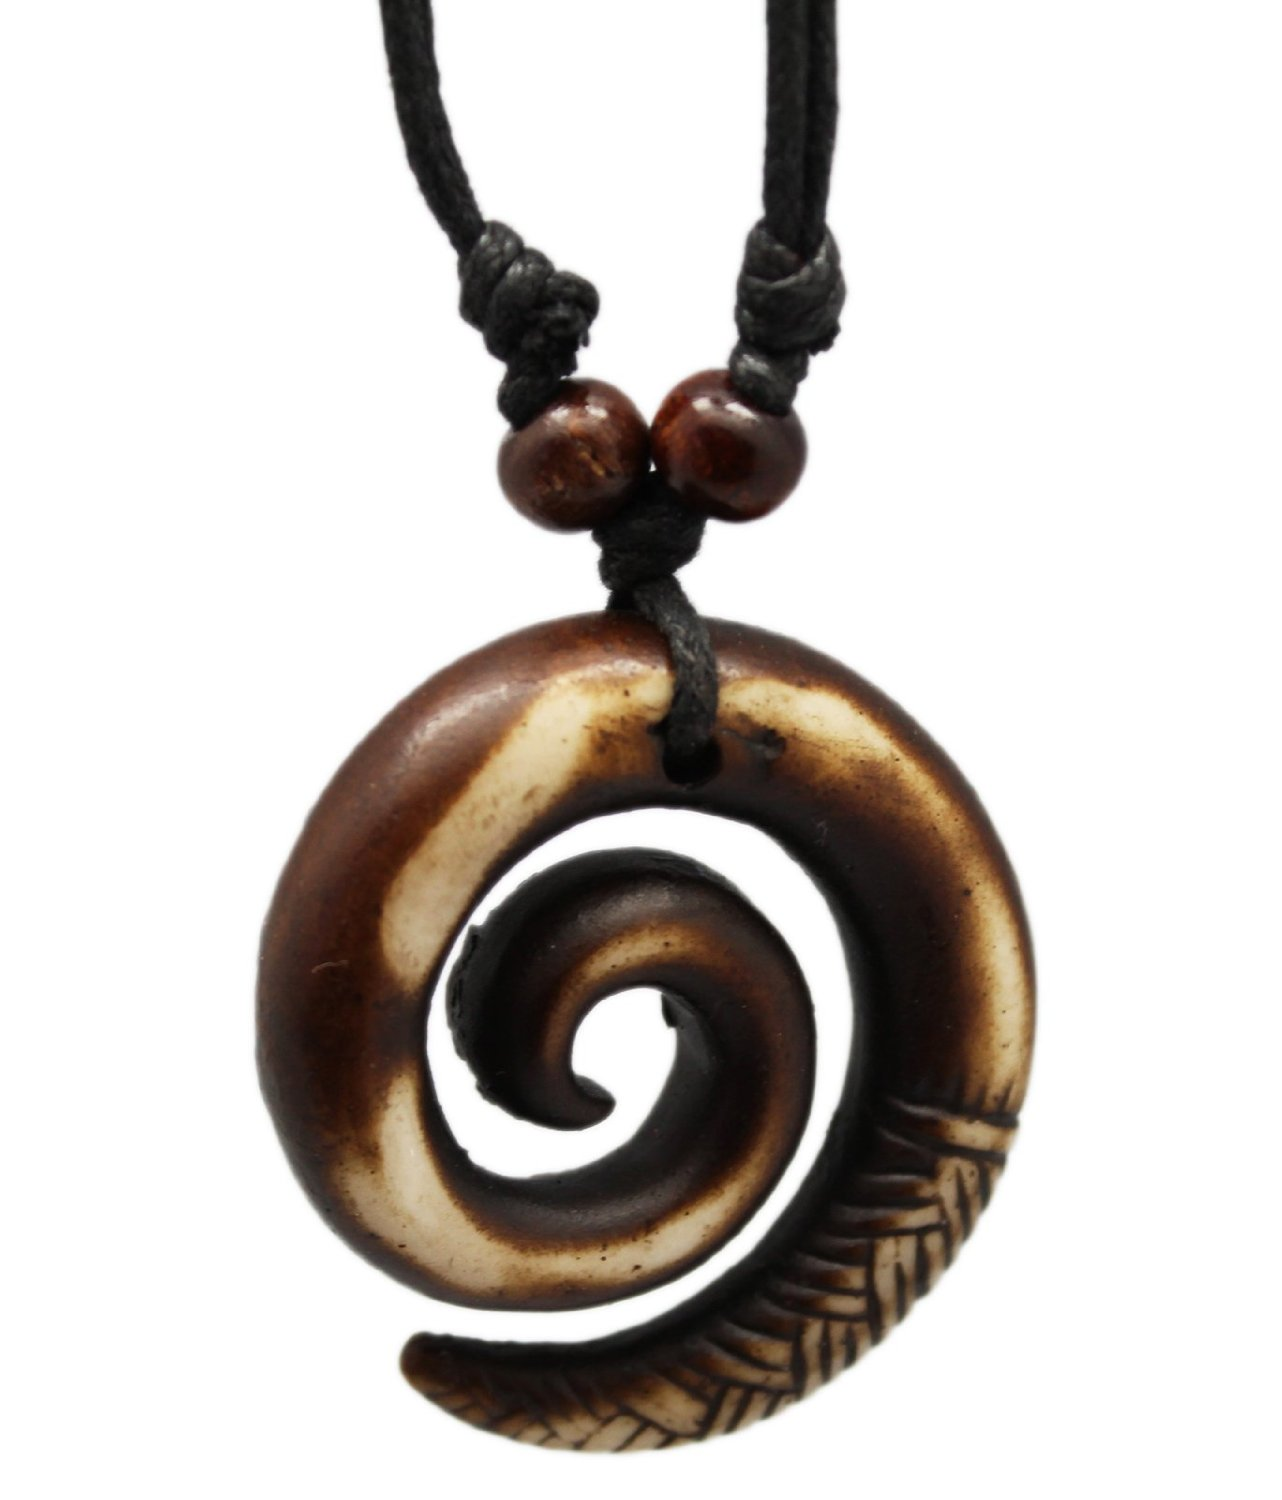 jewelry gilbert chesterton meaning pendant necklaces koru quote necklace pendants with beautiful circle sayings k